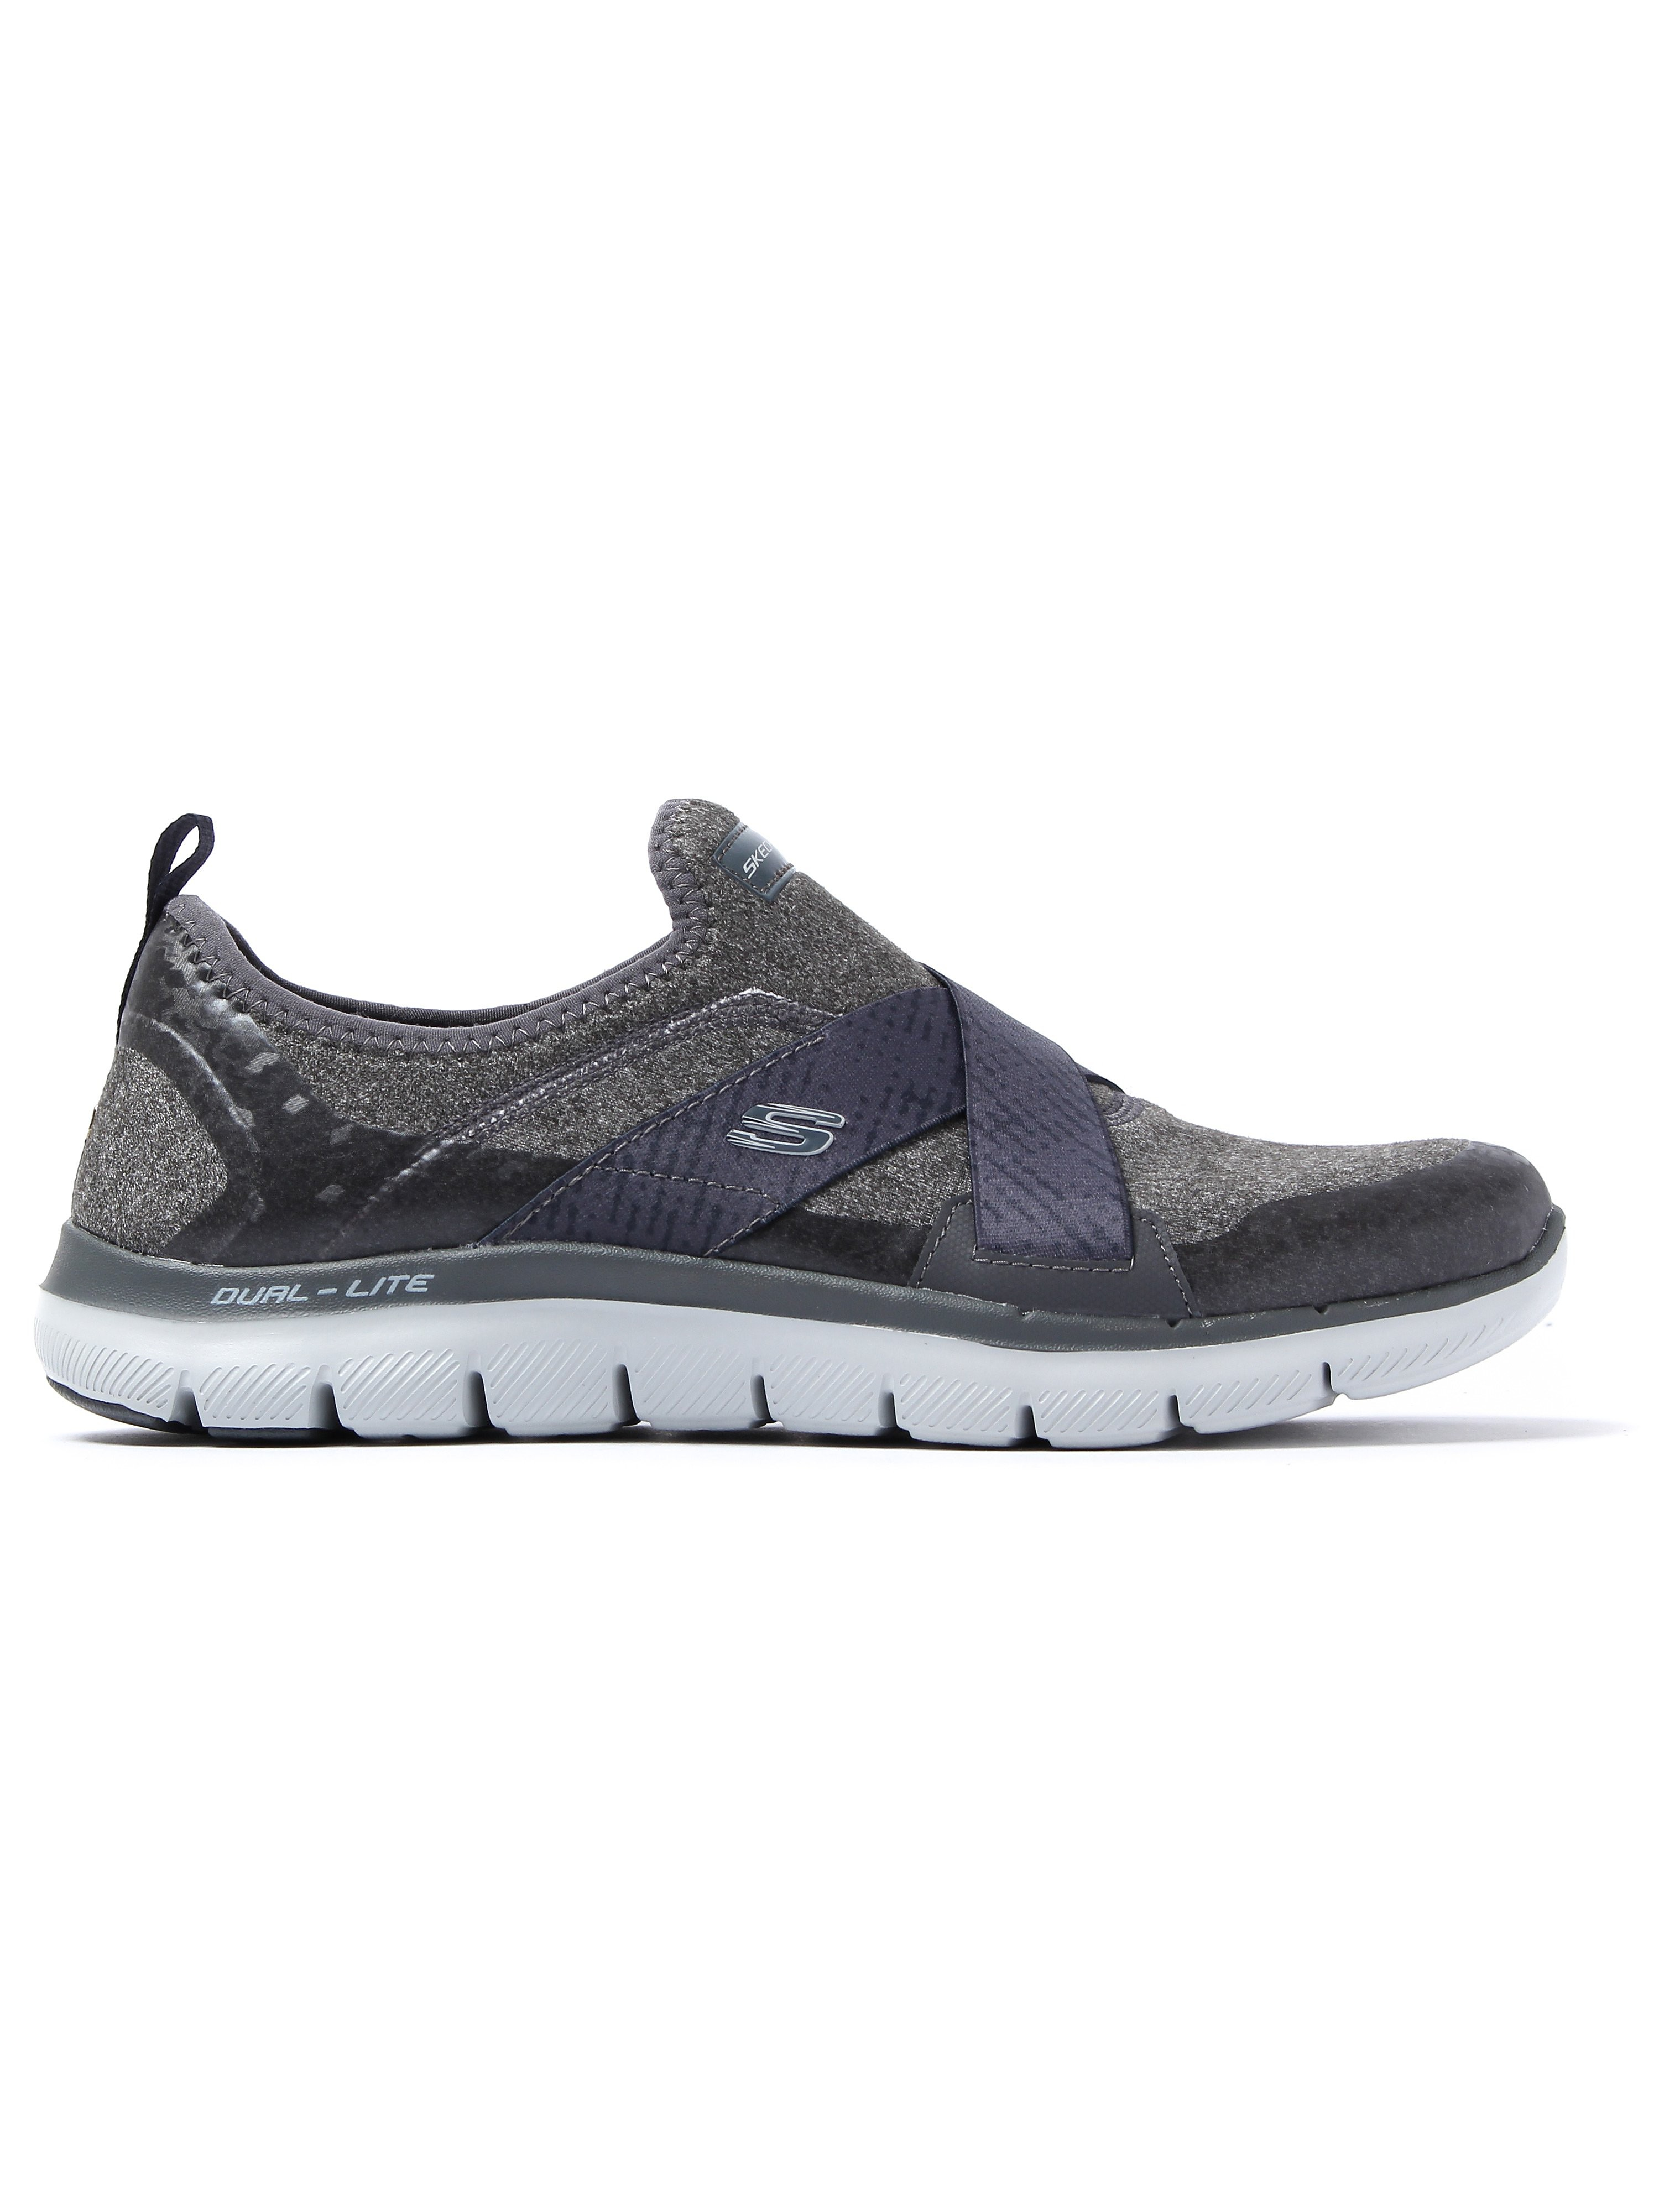 Skechers Women's Flex Appeal 2.0 Bright Eyed Trainers - Charcoal